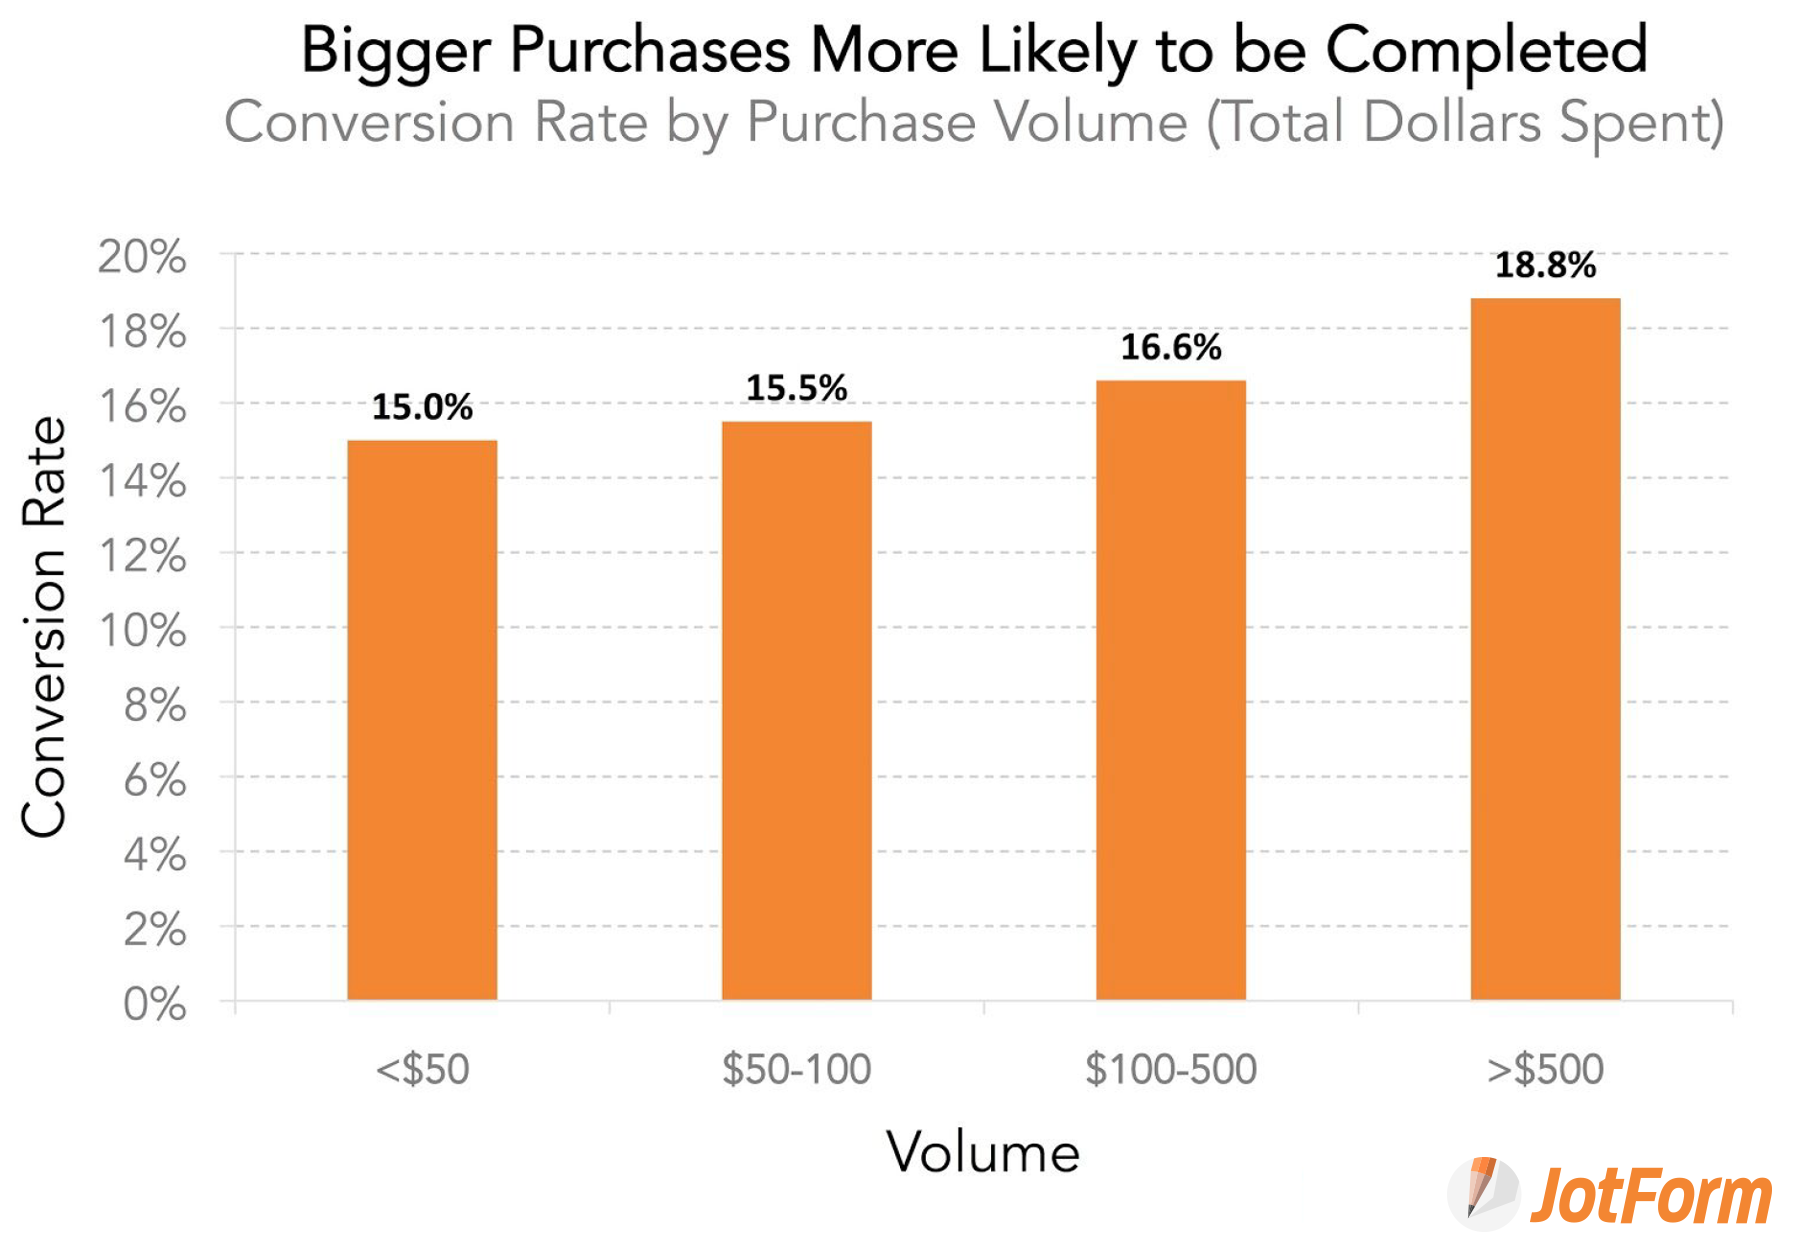 Form conversion rate by purchase volume